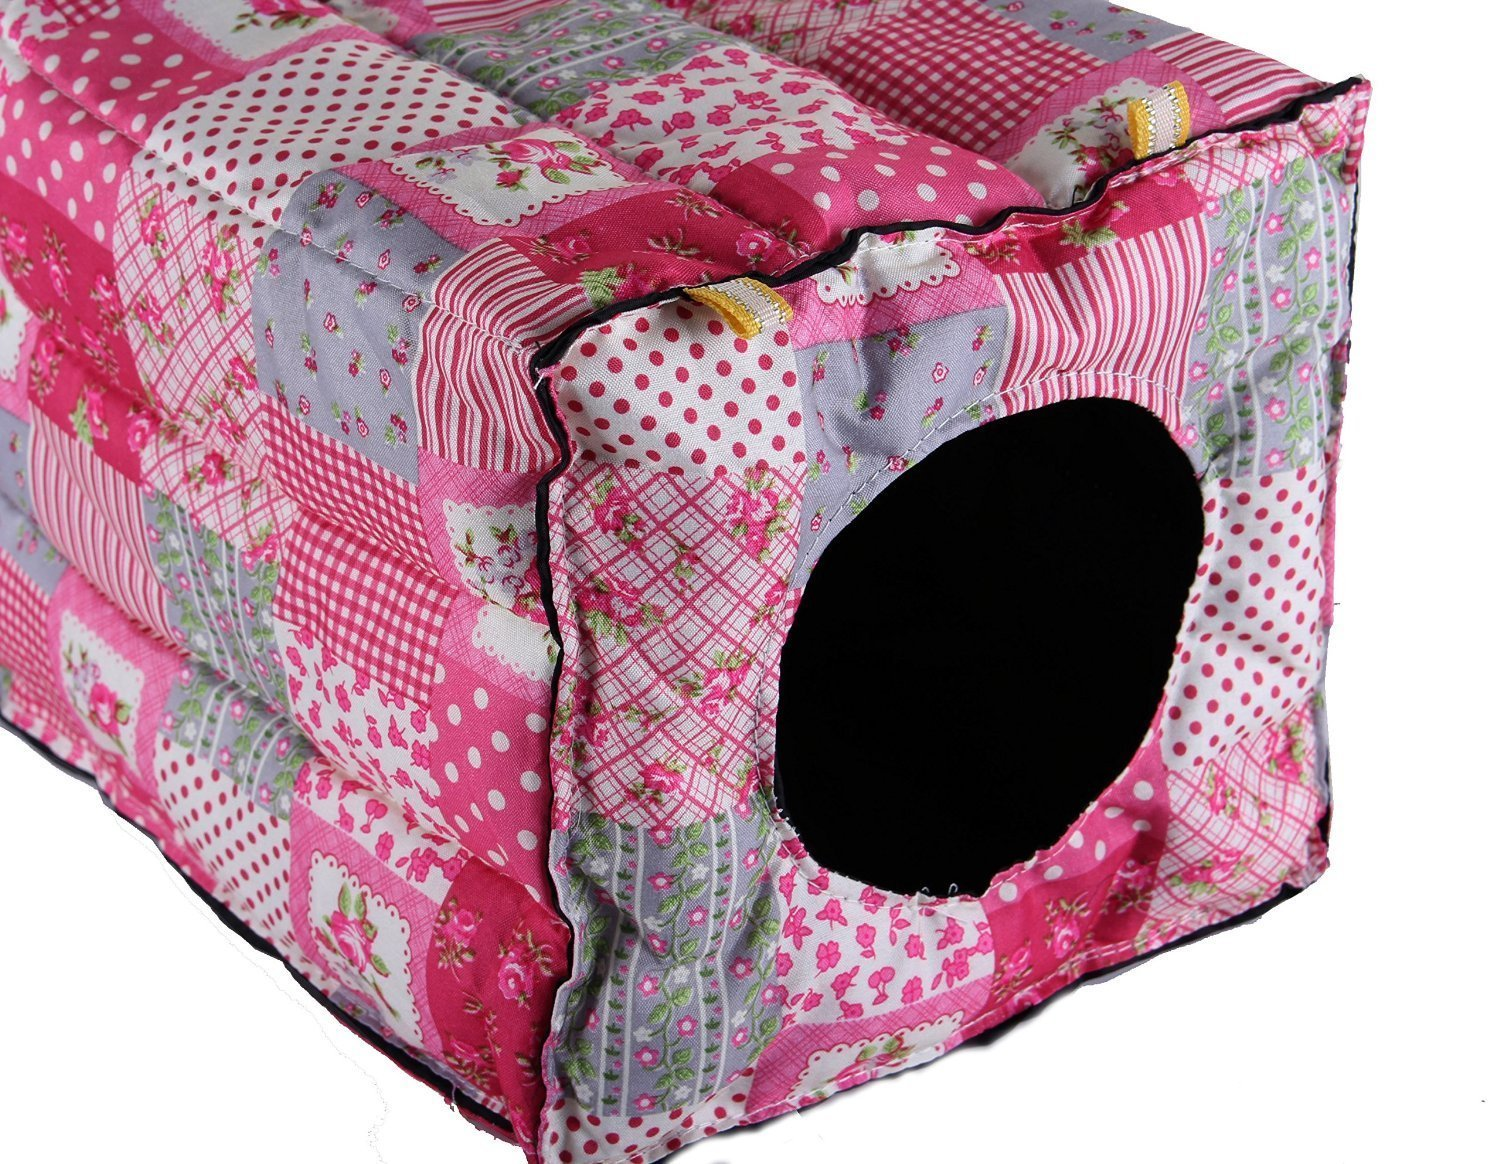 Mkouo Warm Hammock Hanging Bed Tent Toy Cotton House for Small Animal Hamster Guinea Pig Chinchilla Ferret Mkono